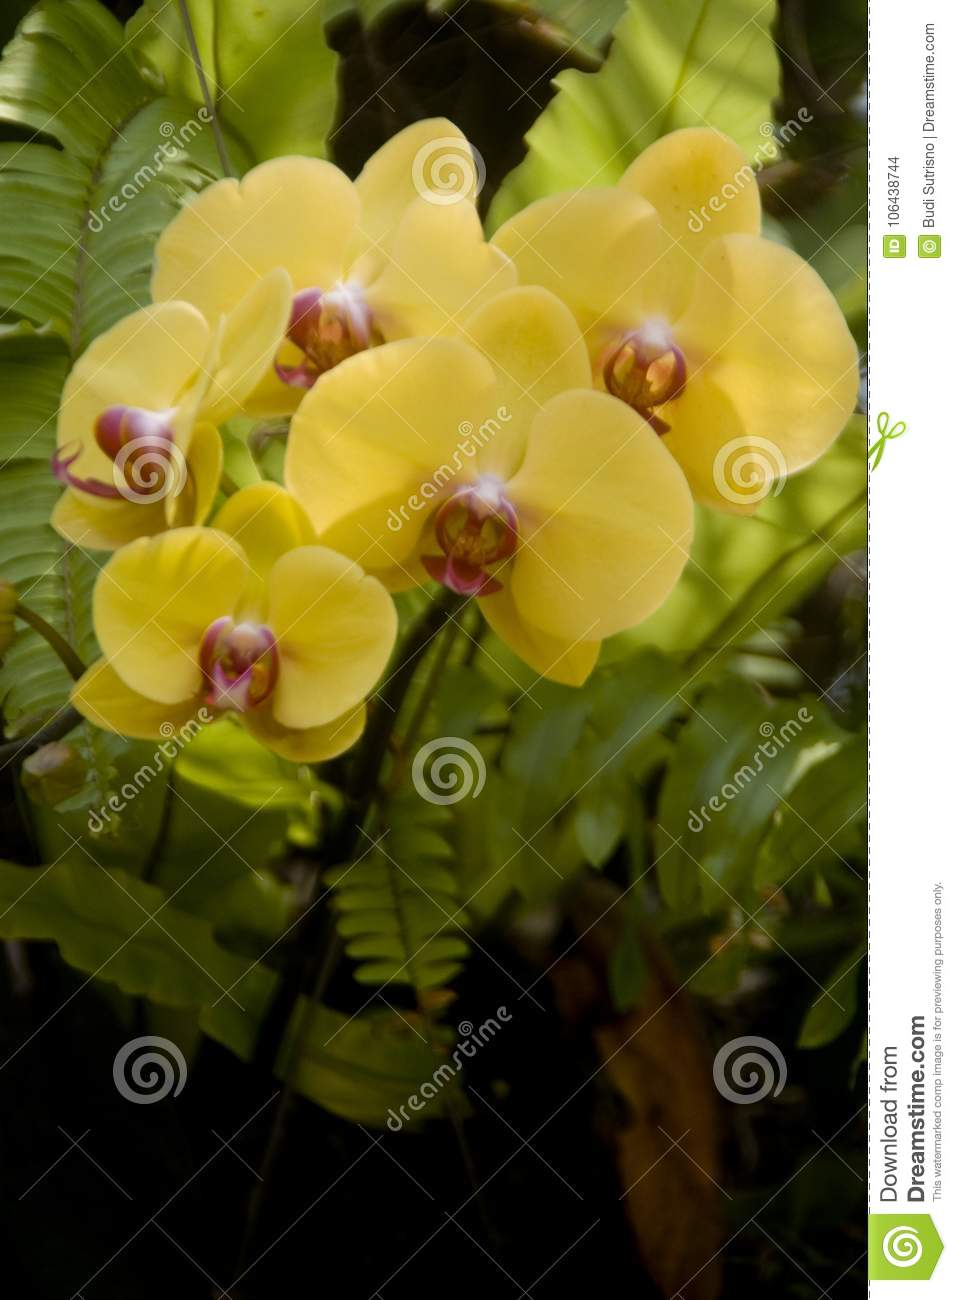 A Yellow Phalaenopsis Hybrid Orchid Flower Stock Photo Image Of